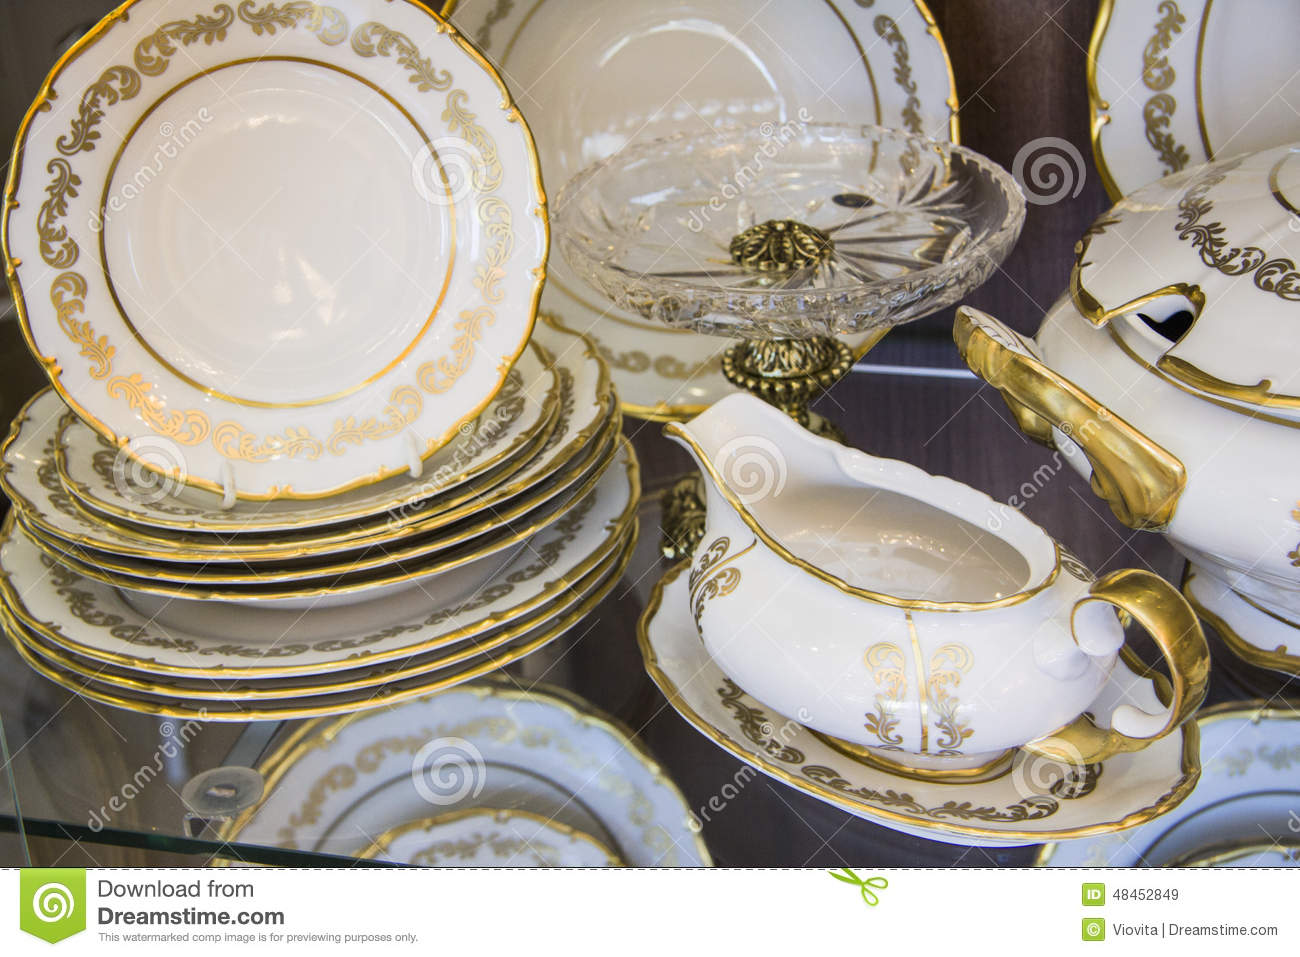 White dining plates set & White dining plates set stock image. Image of gilded - 48452849